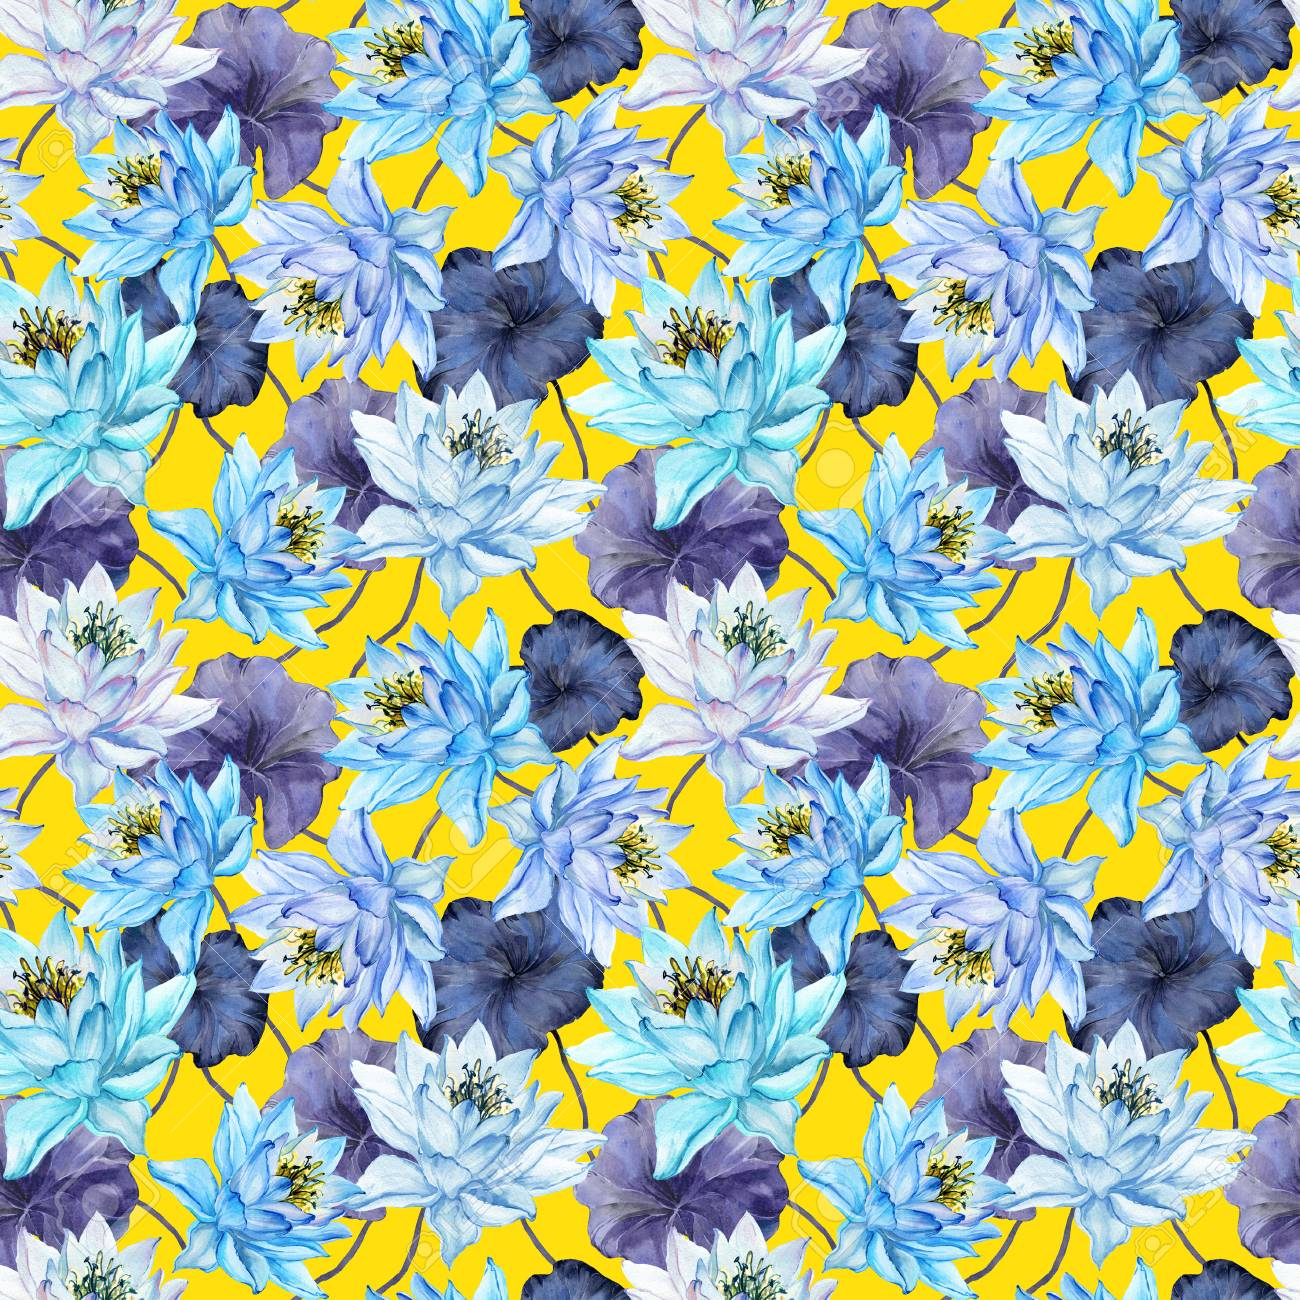 Beautiful Bright Floral Seamless Pattern Blue Lotus Flowers Stock Photo Picture And Royalty Free Image Image 97830890